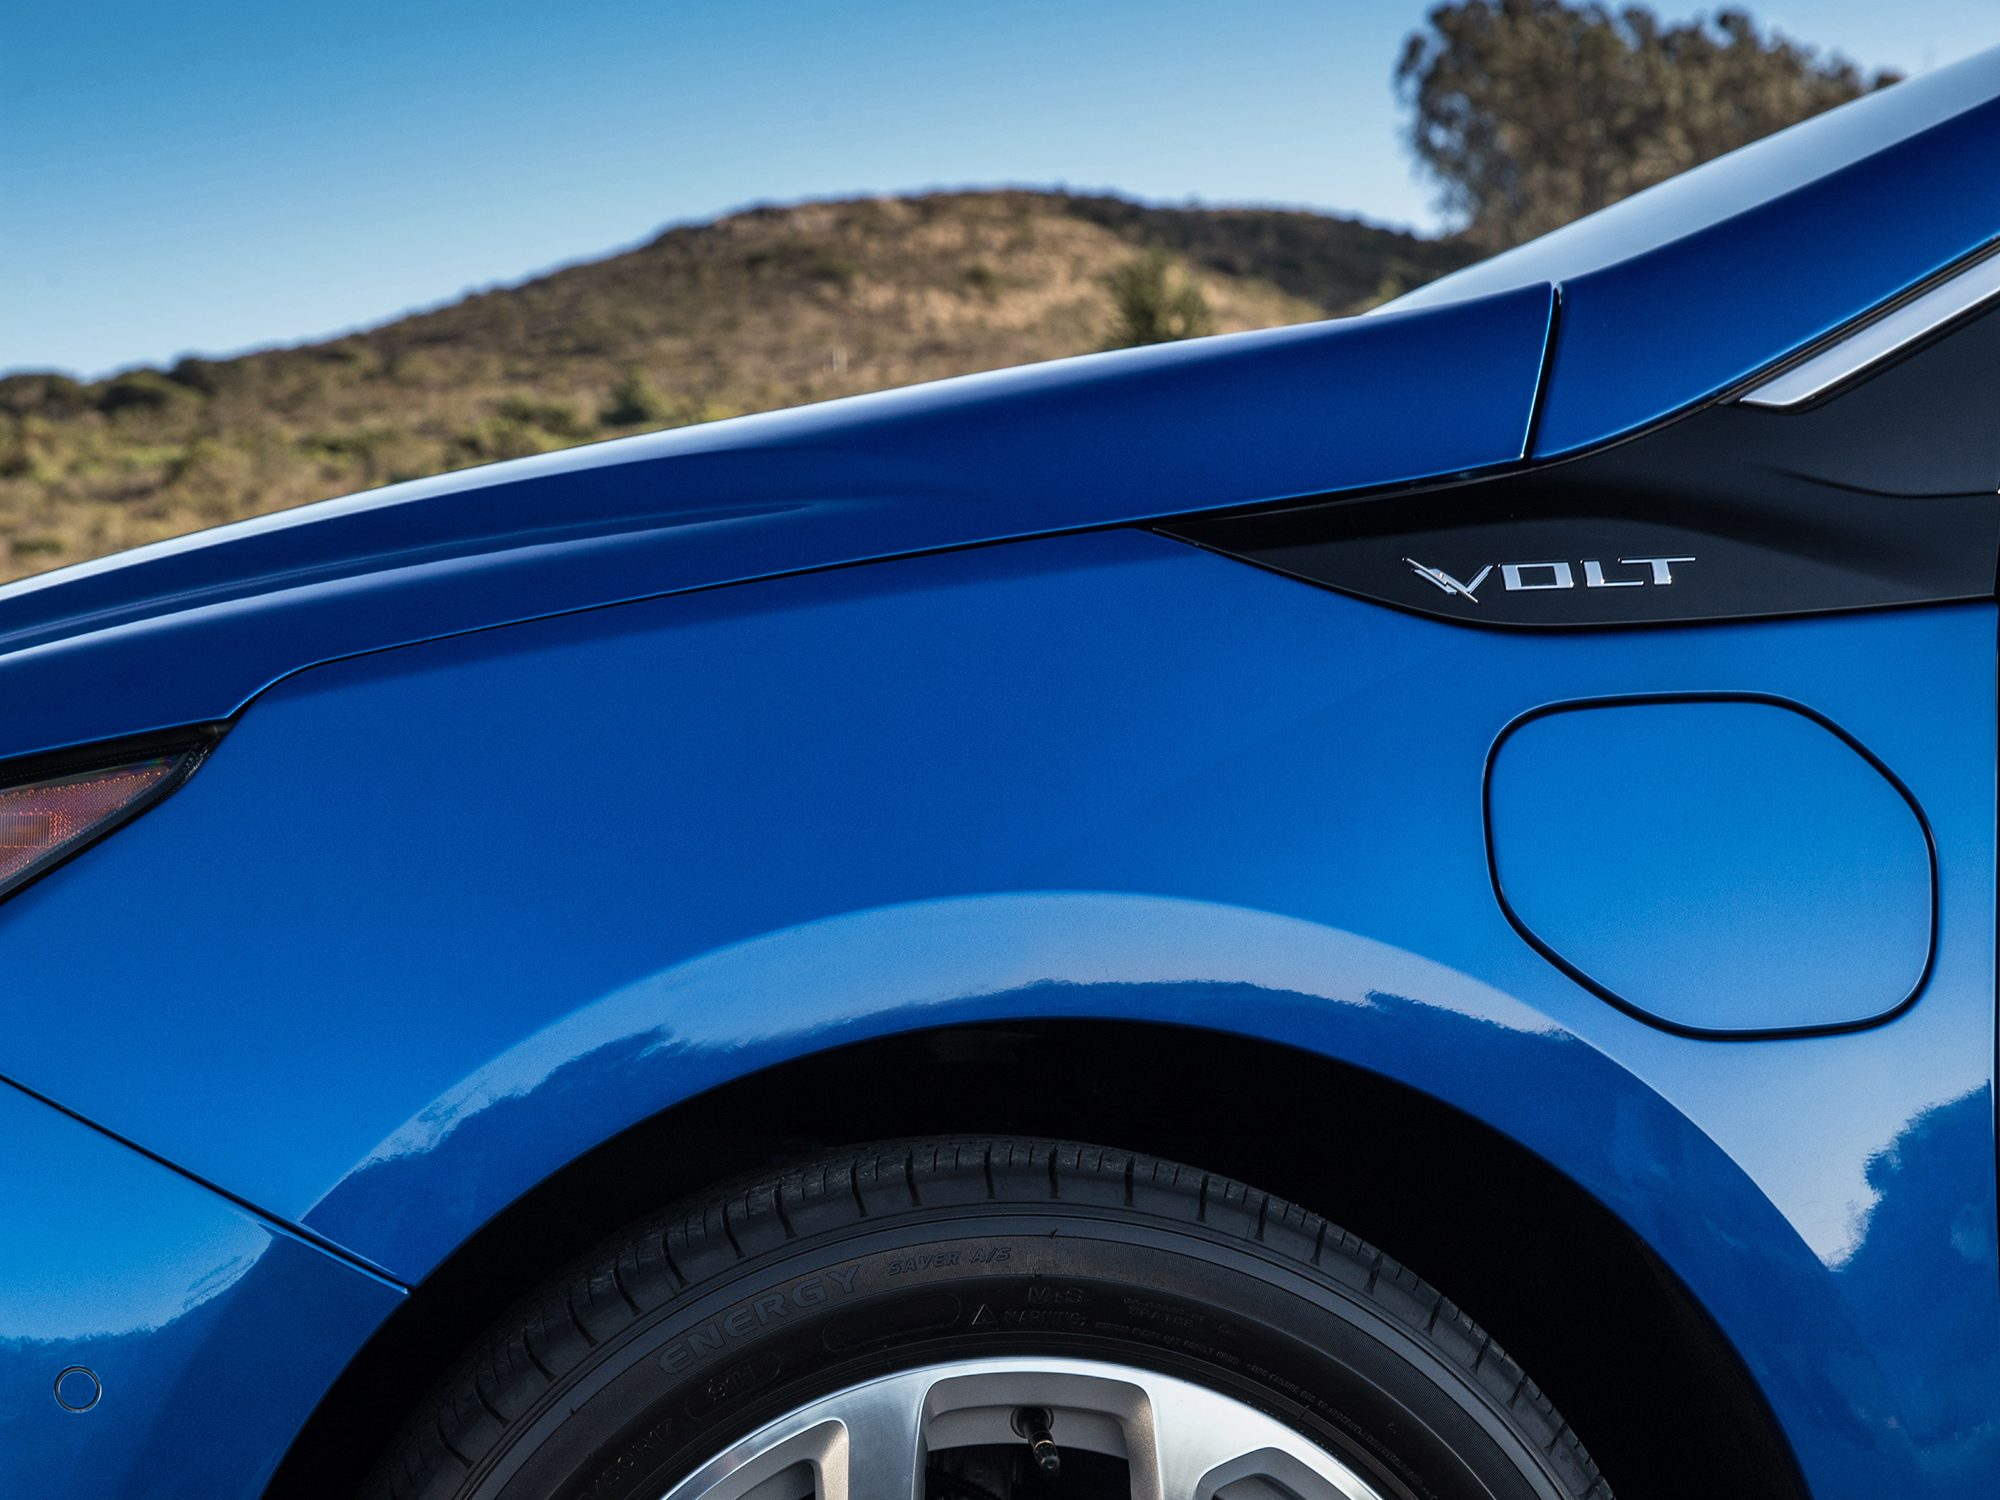 4. The Latest Chevrolet Volt is More Comfortable